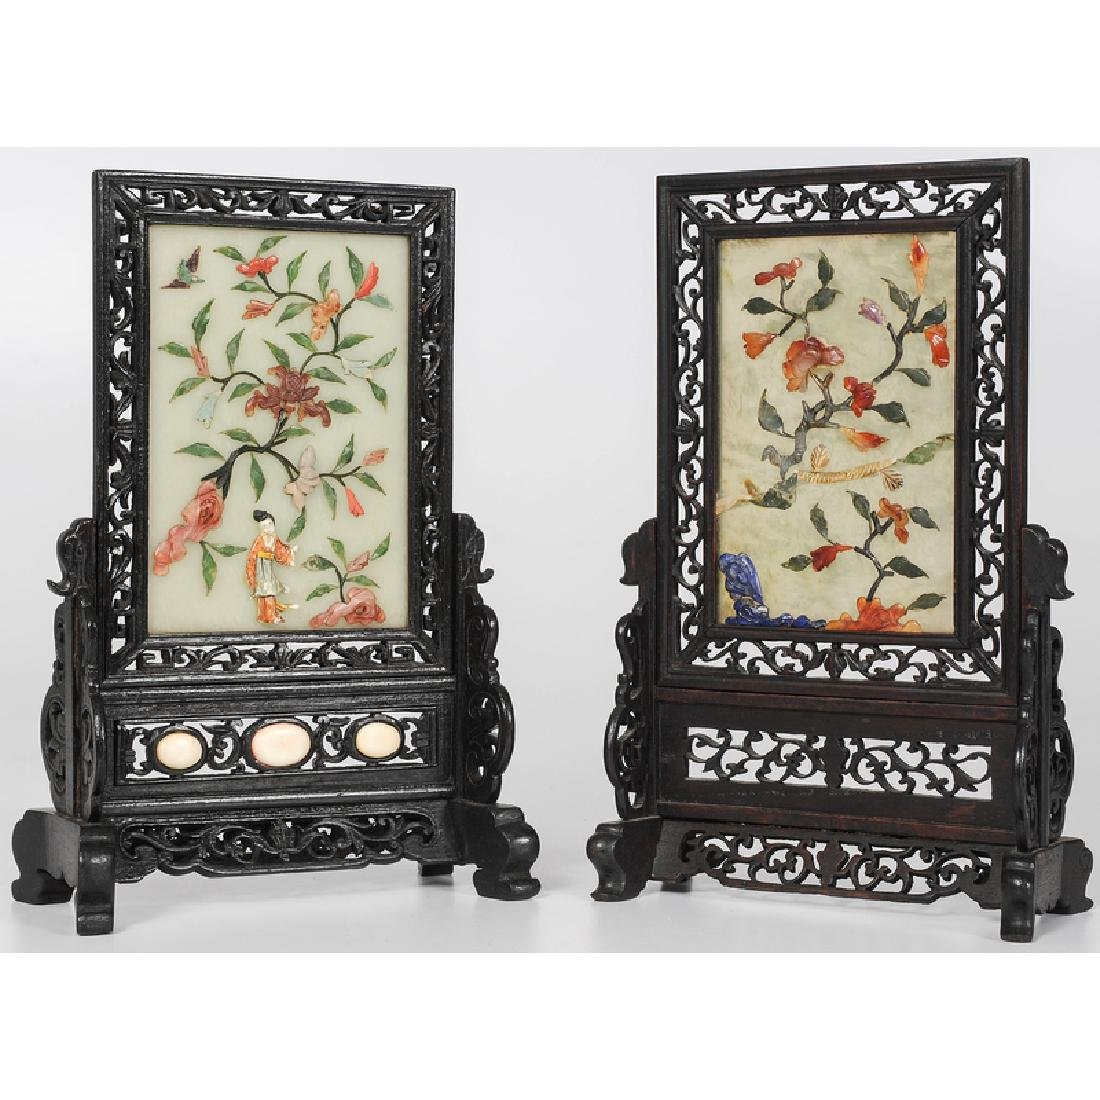 Chinese Hard Stone Screen in Rosewood Stands